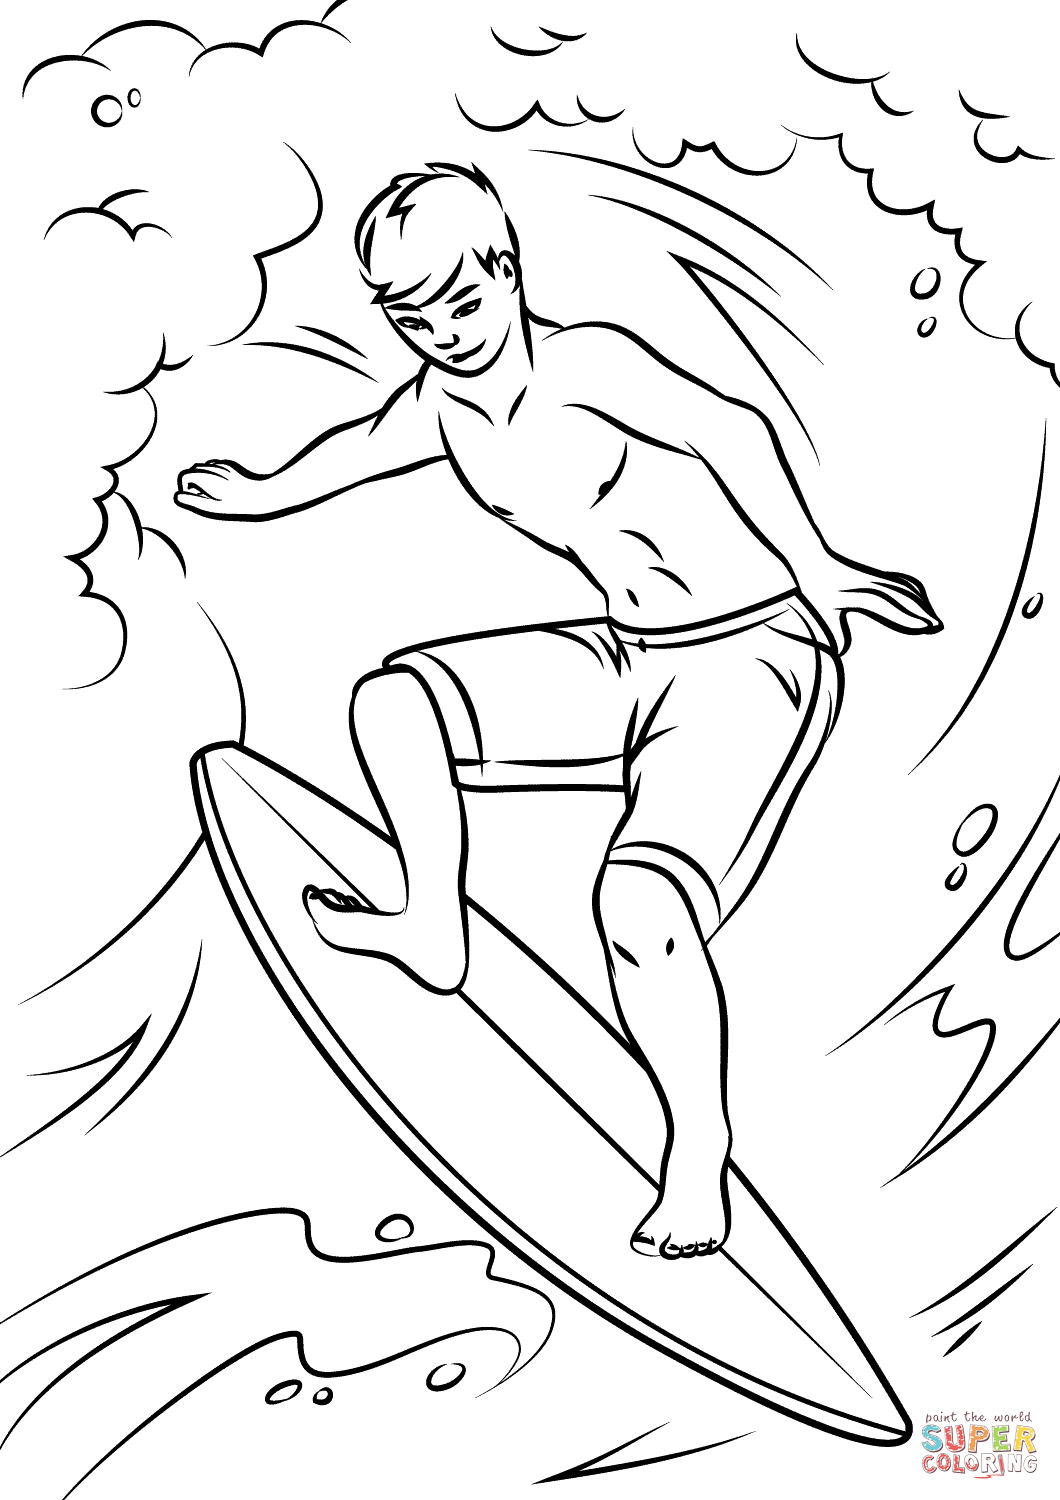 Cool Surfer Coloring Page Free Printable Coloring Pages Coloring Pages Free Printable Coloring Pages Beach Coloring Pages